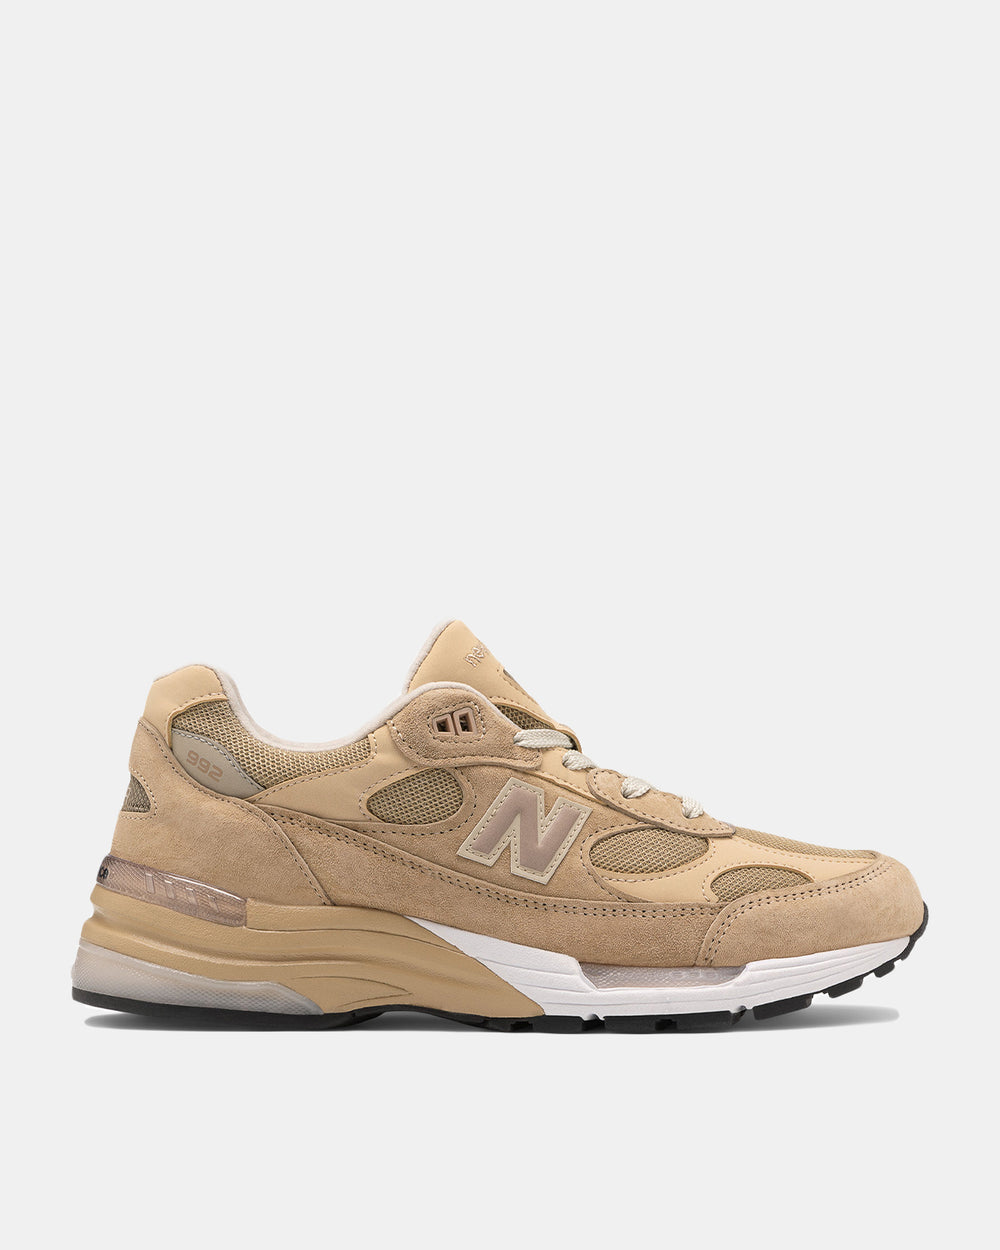 New Balance - Made in US 992 (Tan | White)